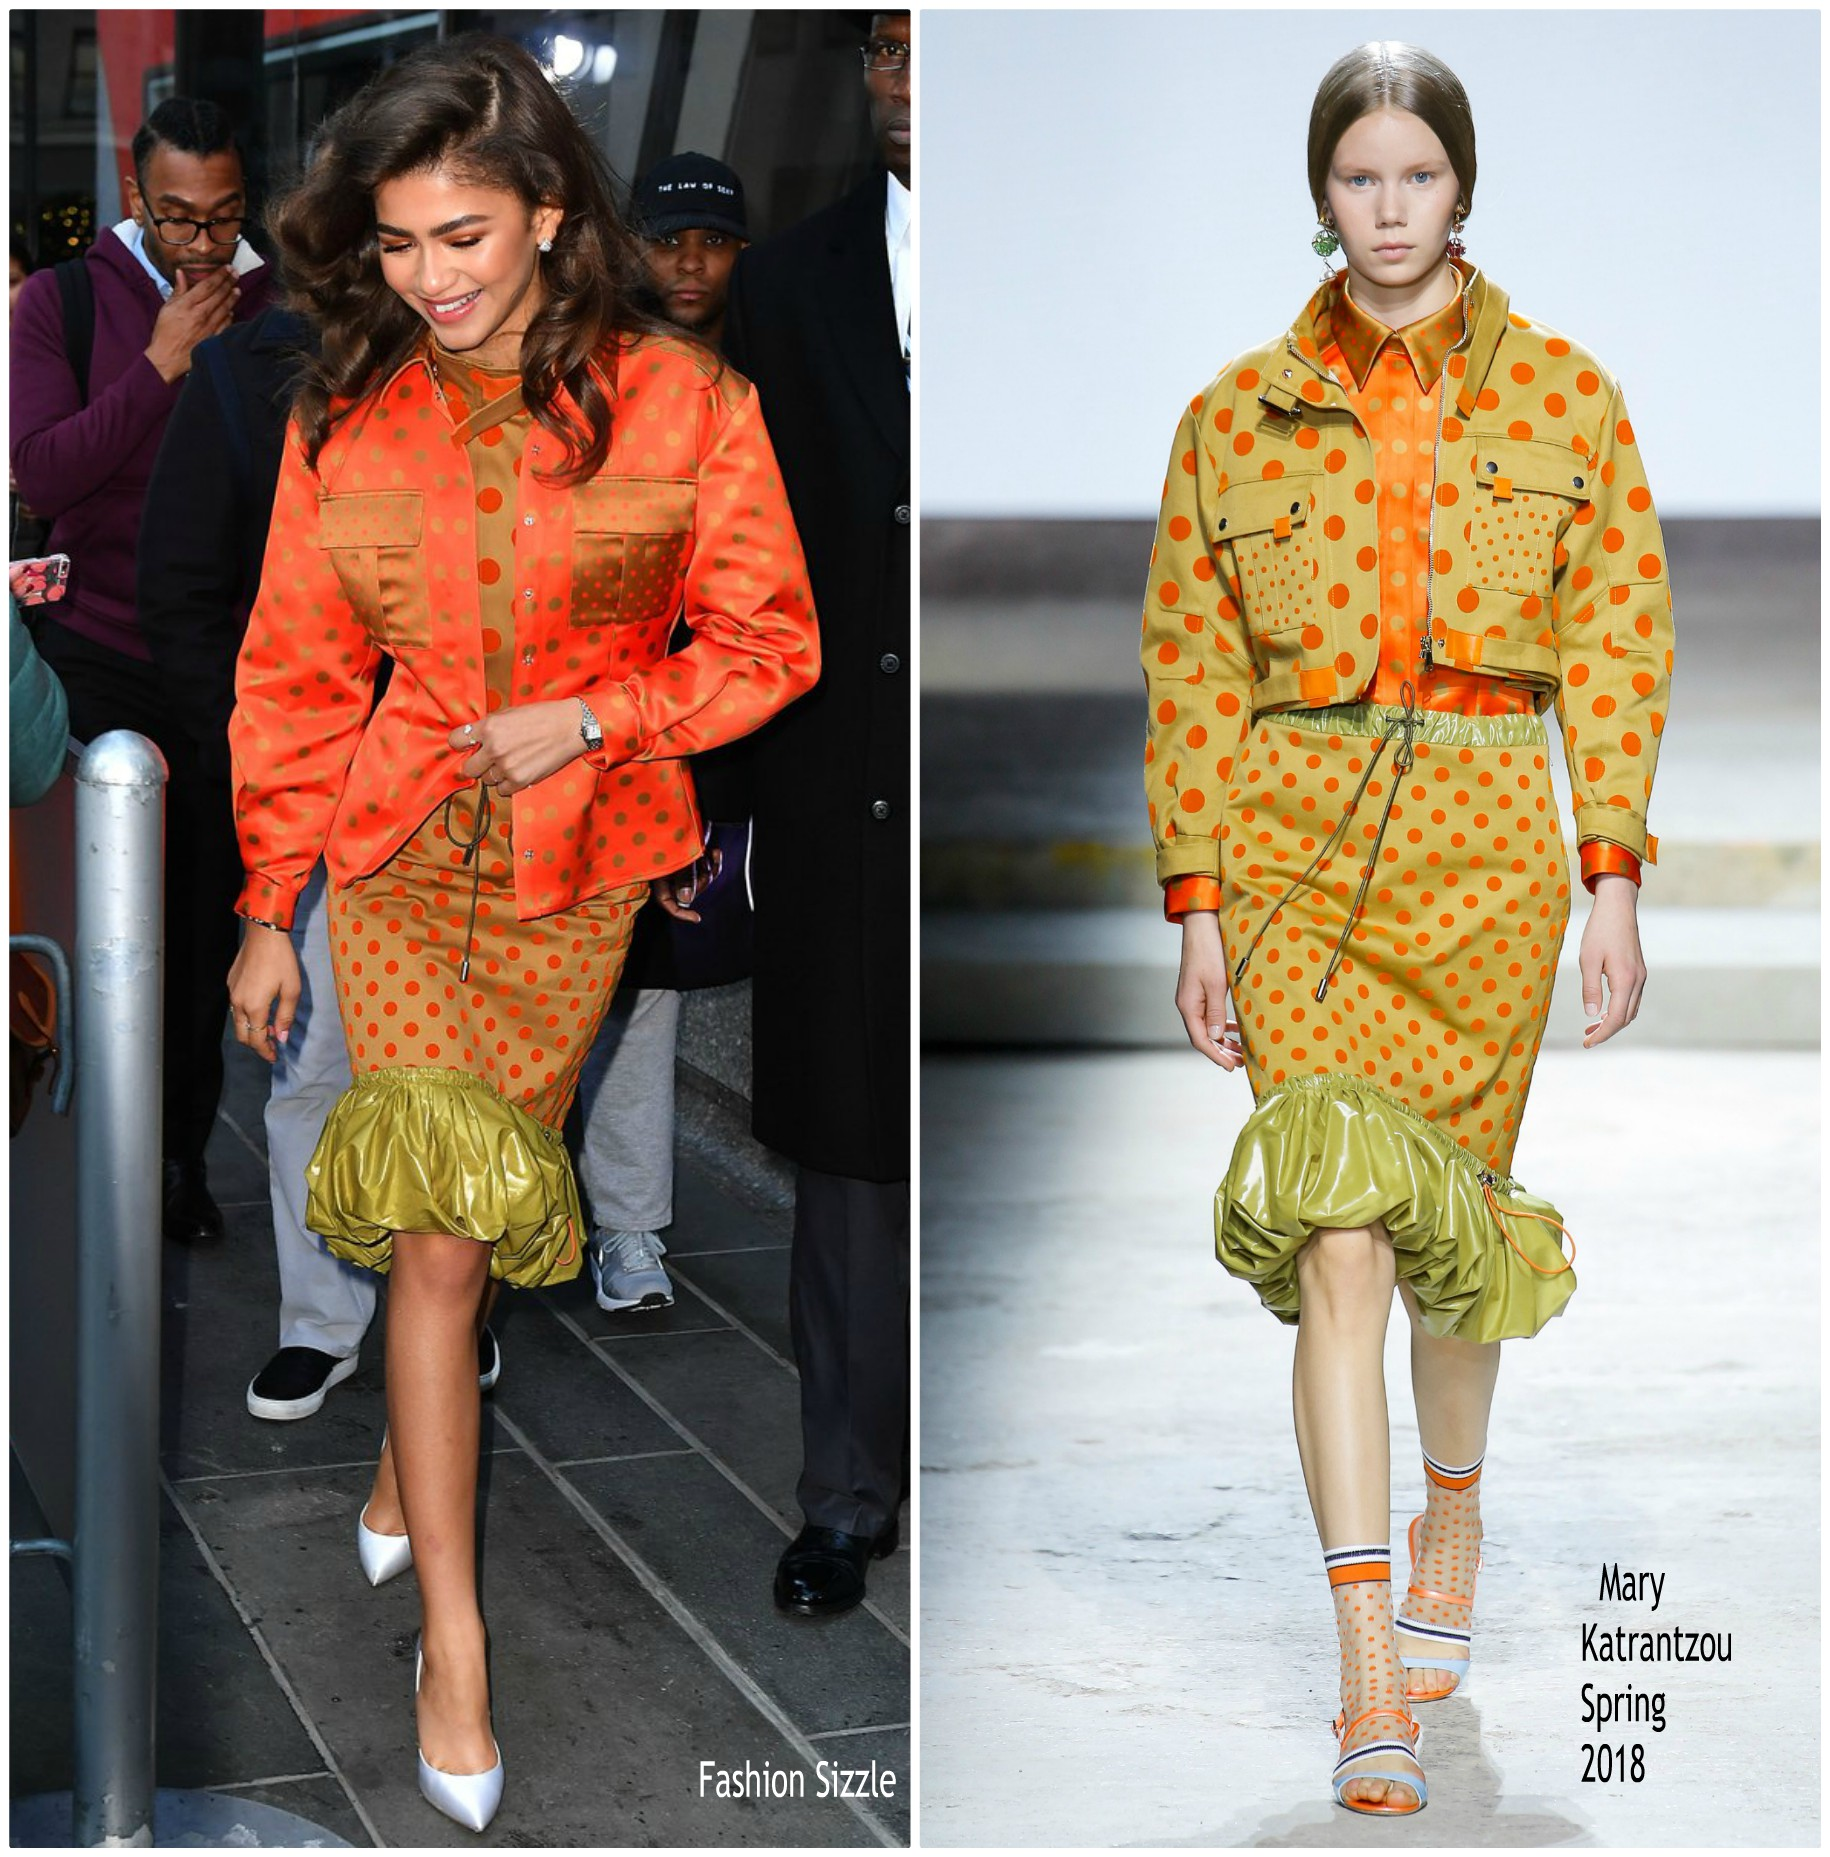 zendaya-coleman-in-mary-katrantzou-the-today-show-departure